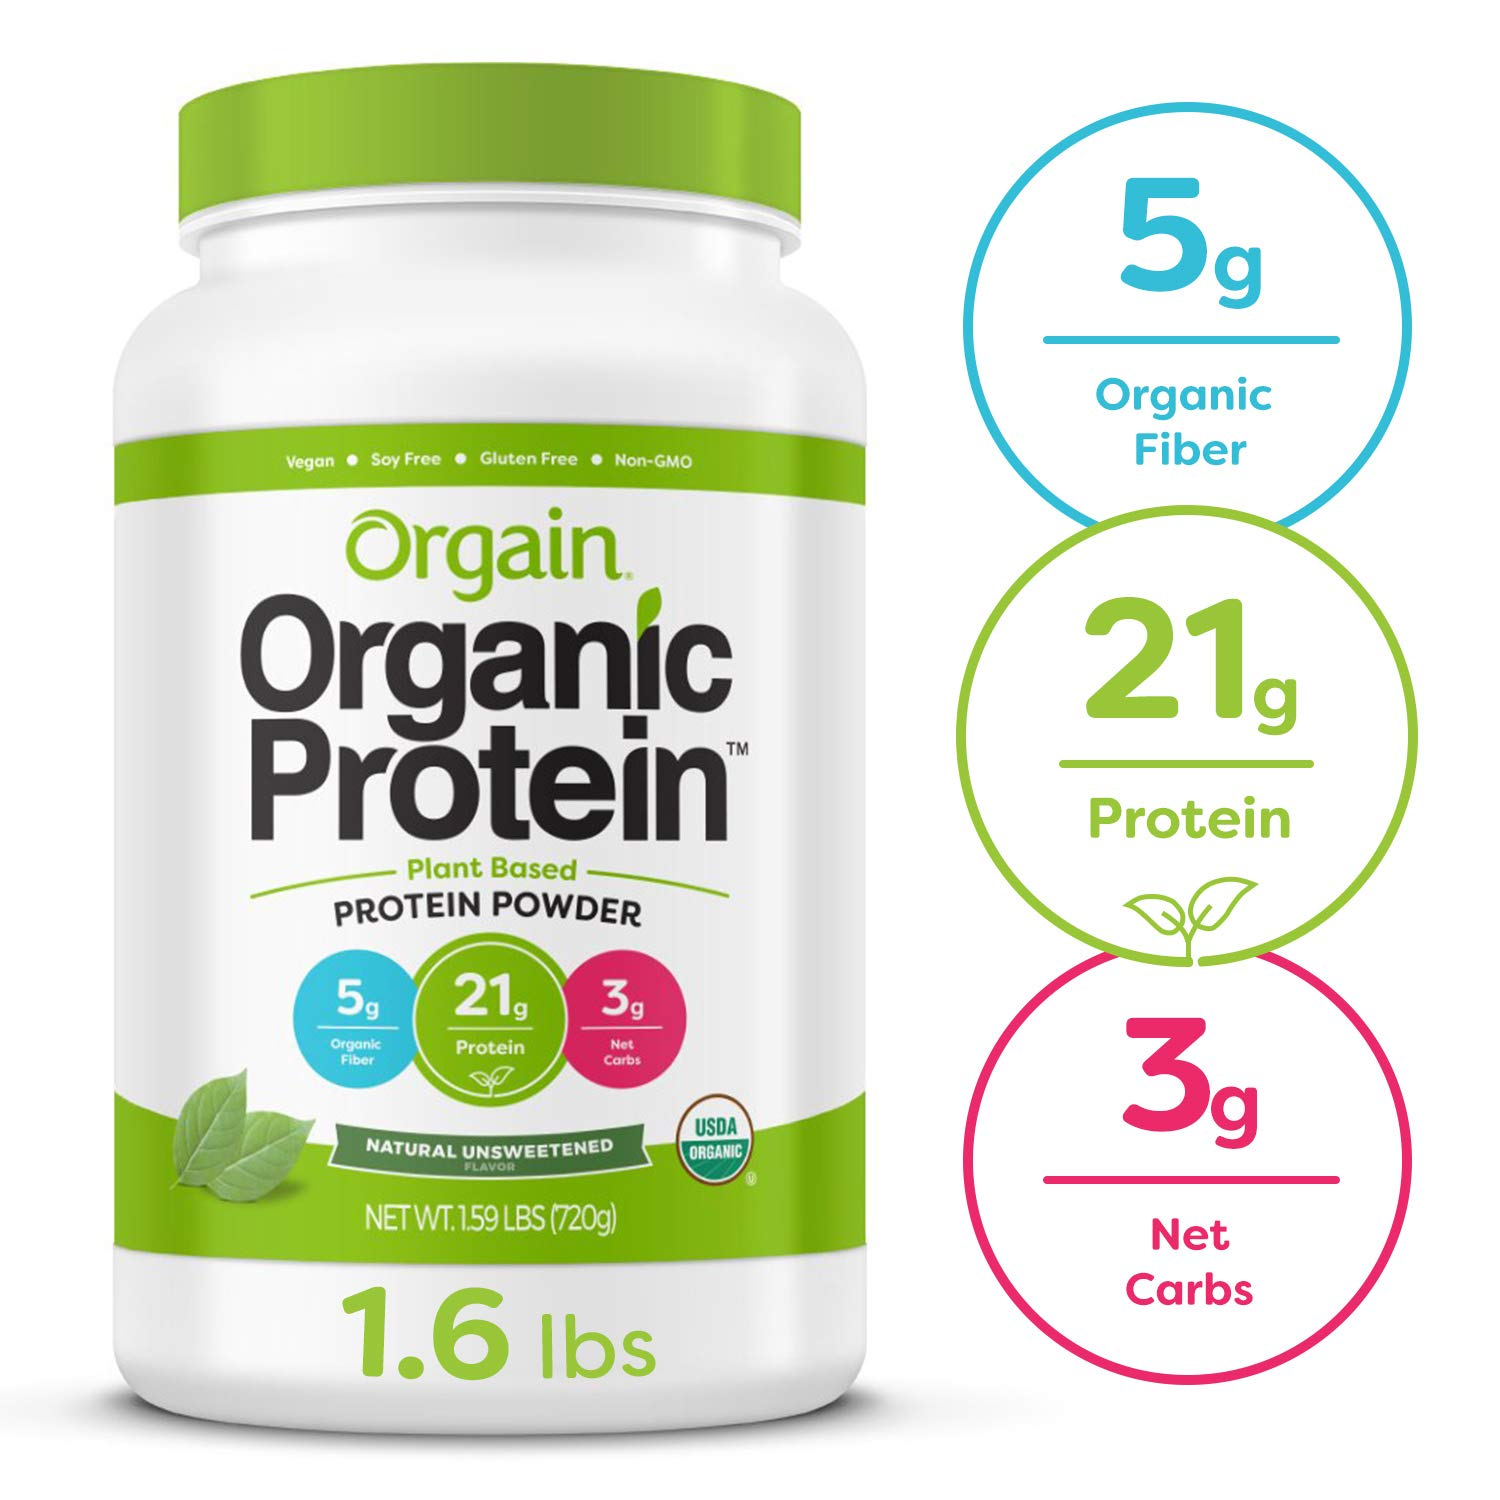 Orgain Organic Plant Based Protein Powder, Natural Unsweetened - Vegan, Low Net Carbs, Non Dairy, Gluten Free, Lactose Free, No Sugar Added, Soy Free, Kosher, Non-GMO, 1.59 Pound by Orgain